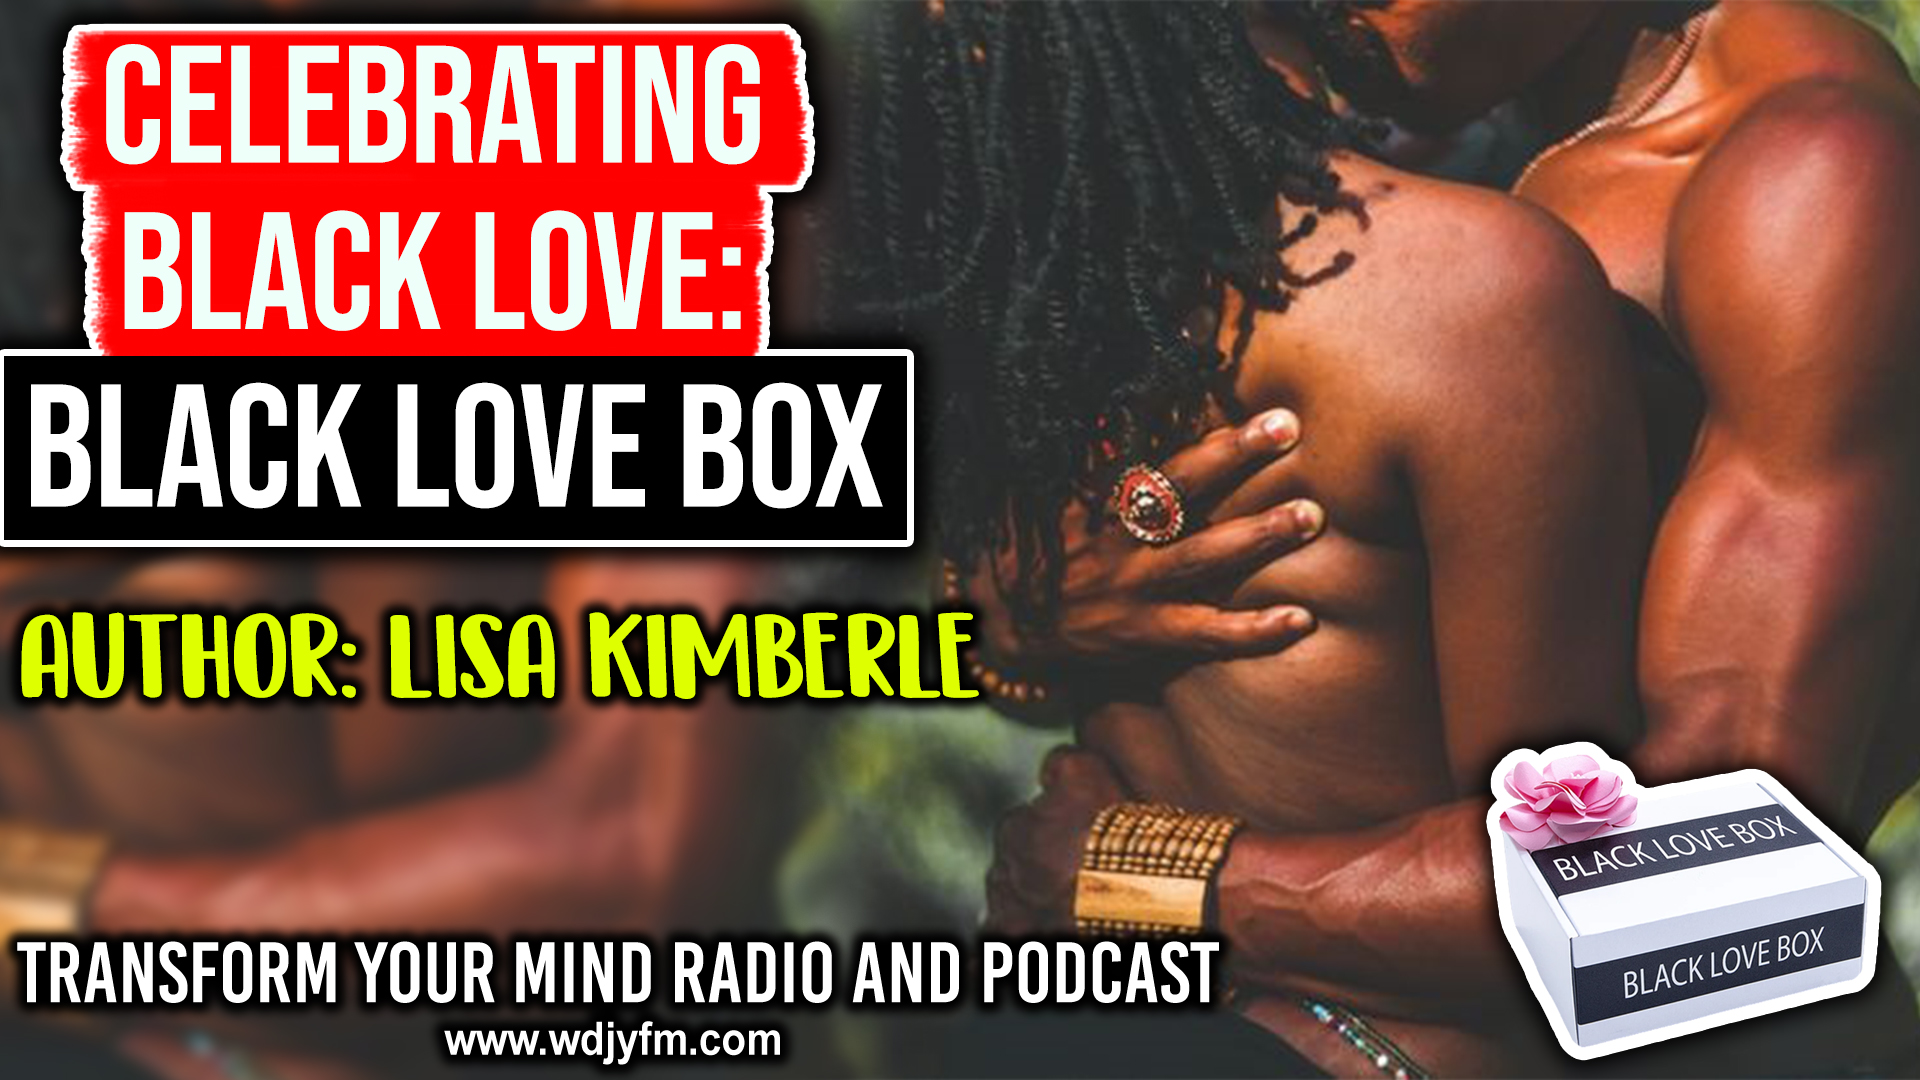 Black Love Box